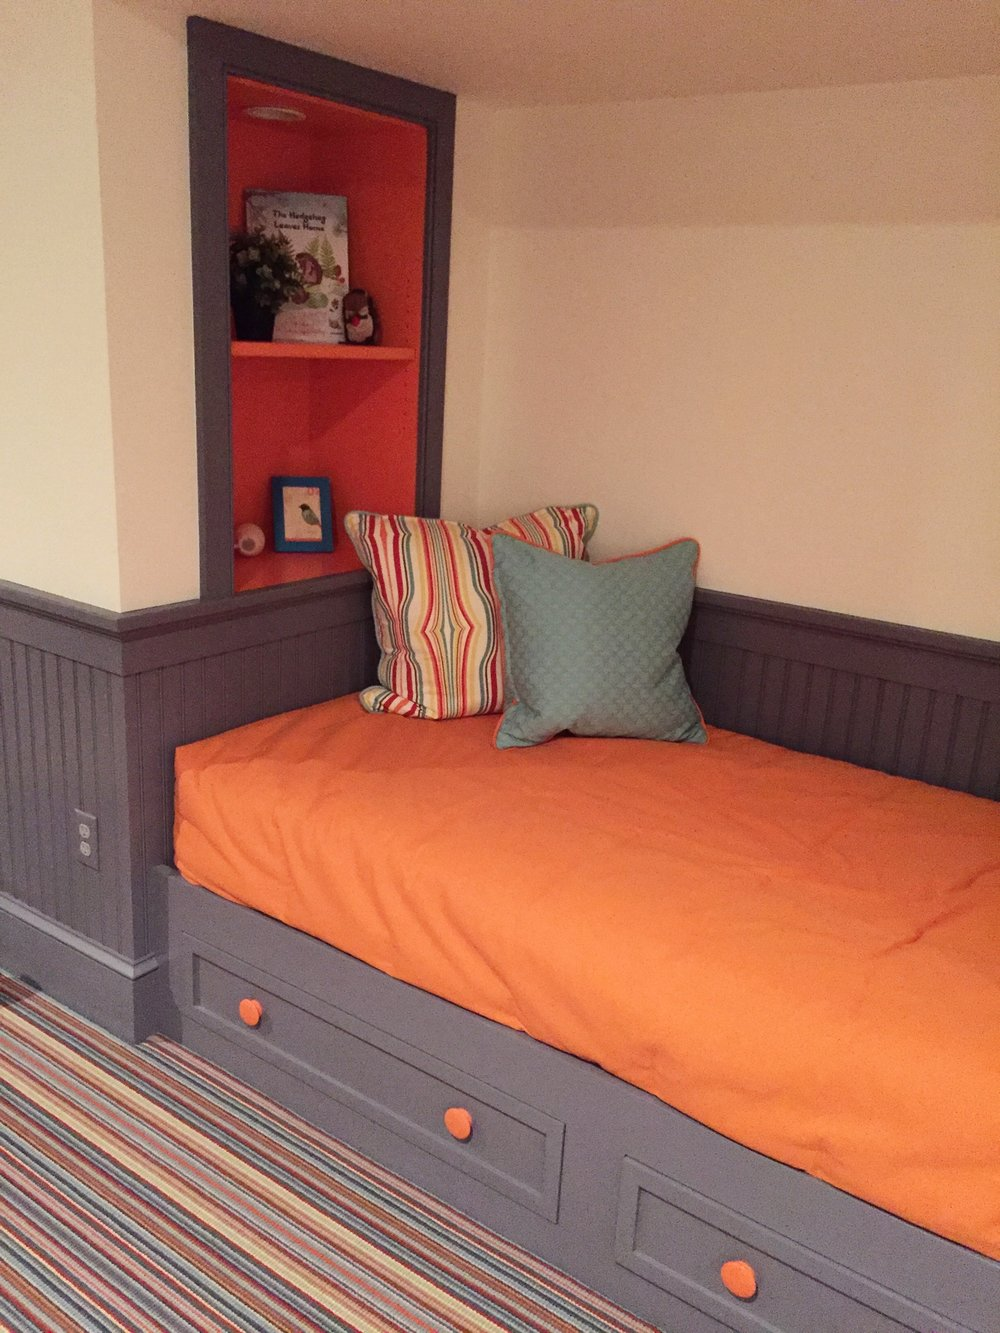 These built in daybeds are ready for any preteen and can take them all the way through high school.  The built in shelves have a charging station (you've got to keep your devices charged!) plus a dimmable night light (for those afraid of the dark...come on, you know who you are!)  The grey and orange paint can be made more masculine or feminine with pillows and bedding.